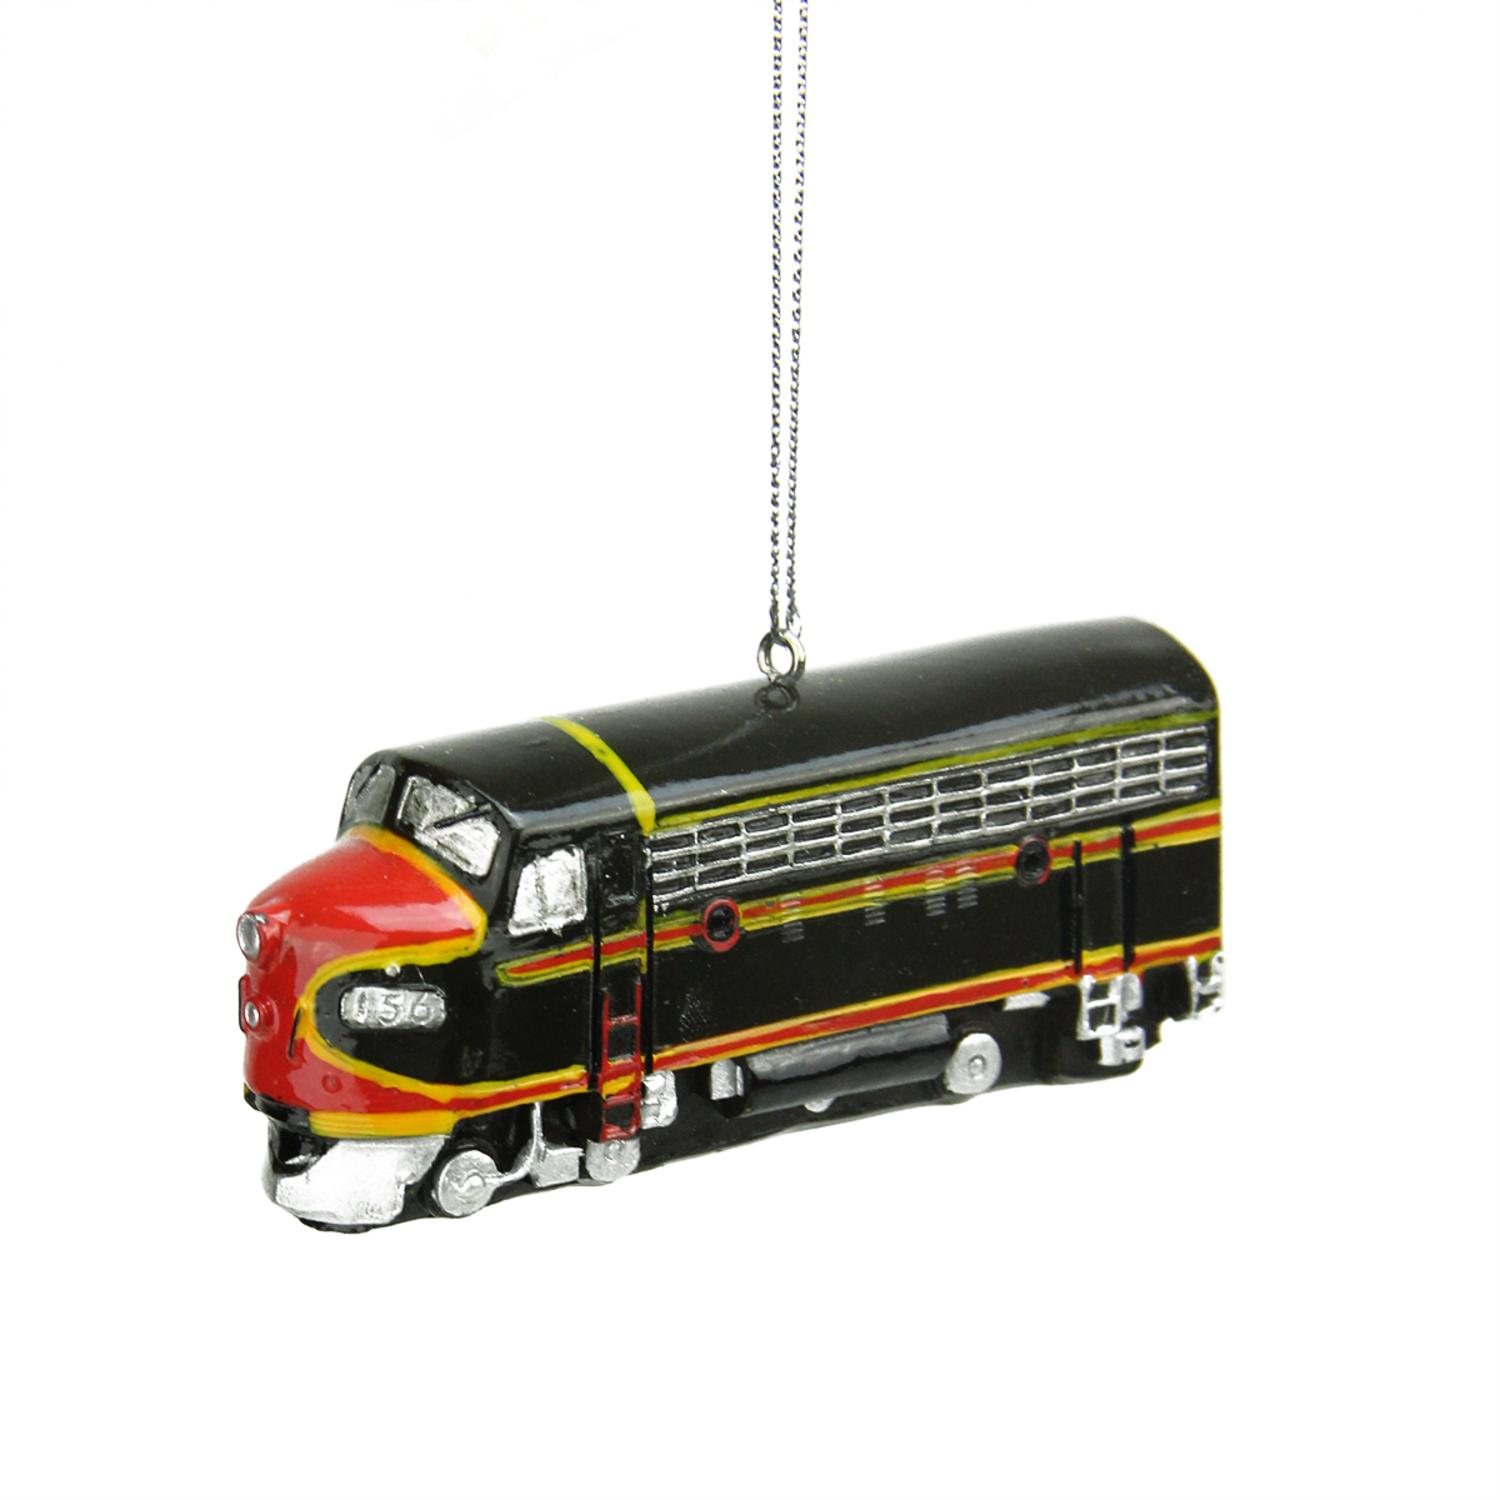 3 5 brown and red classic locomotive train replica christmas ornament